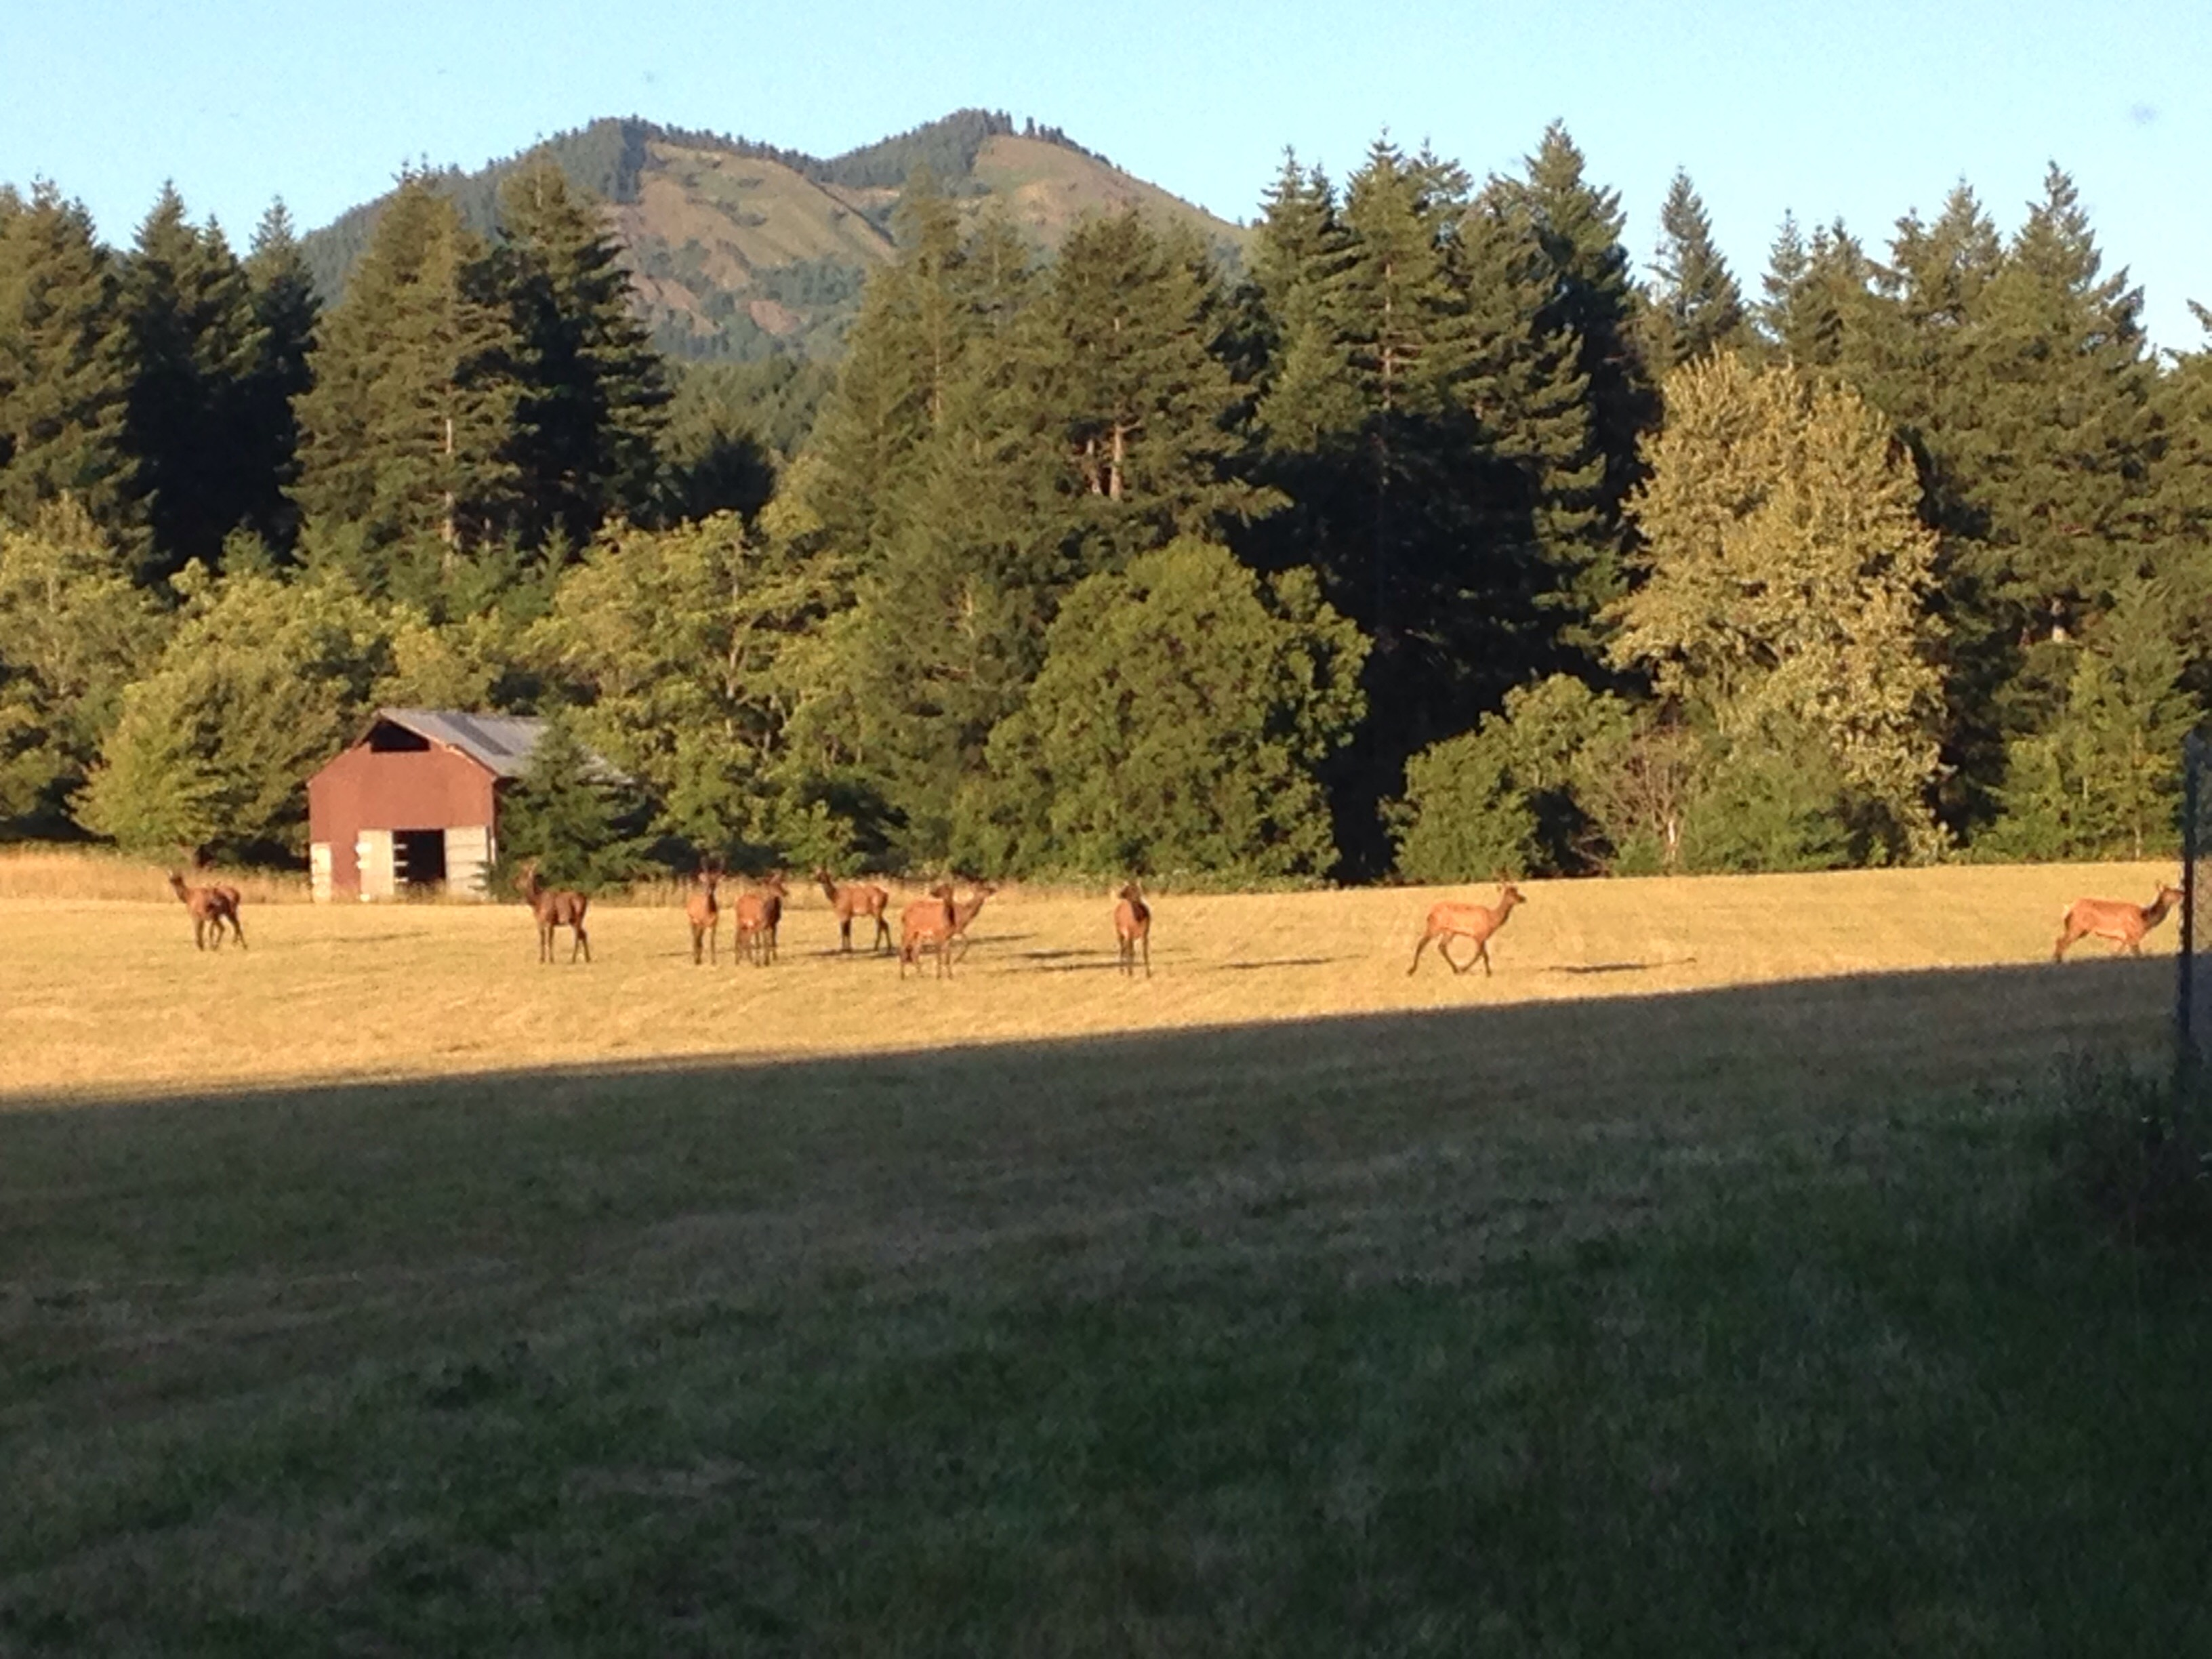 Frequently seen local Elk